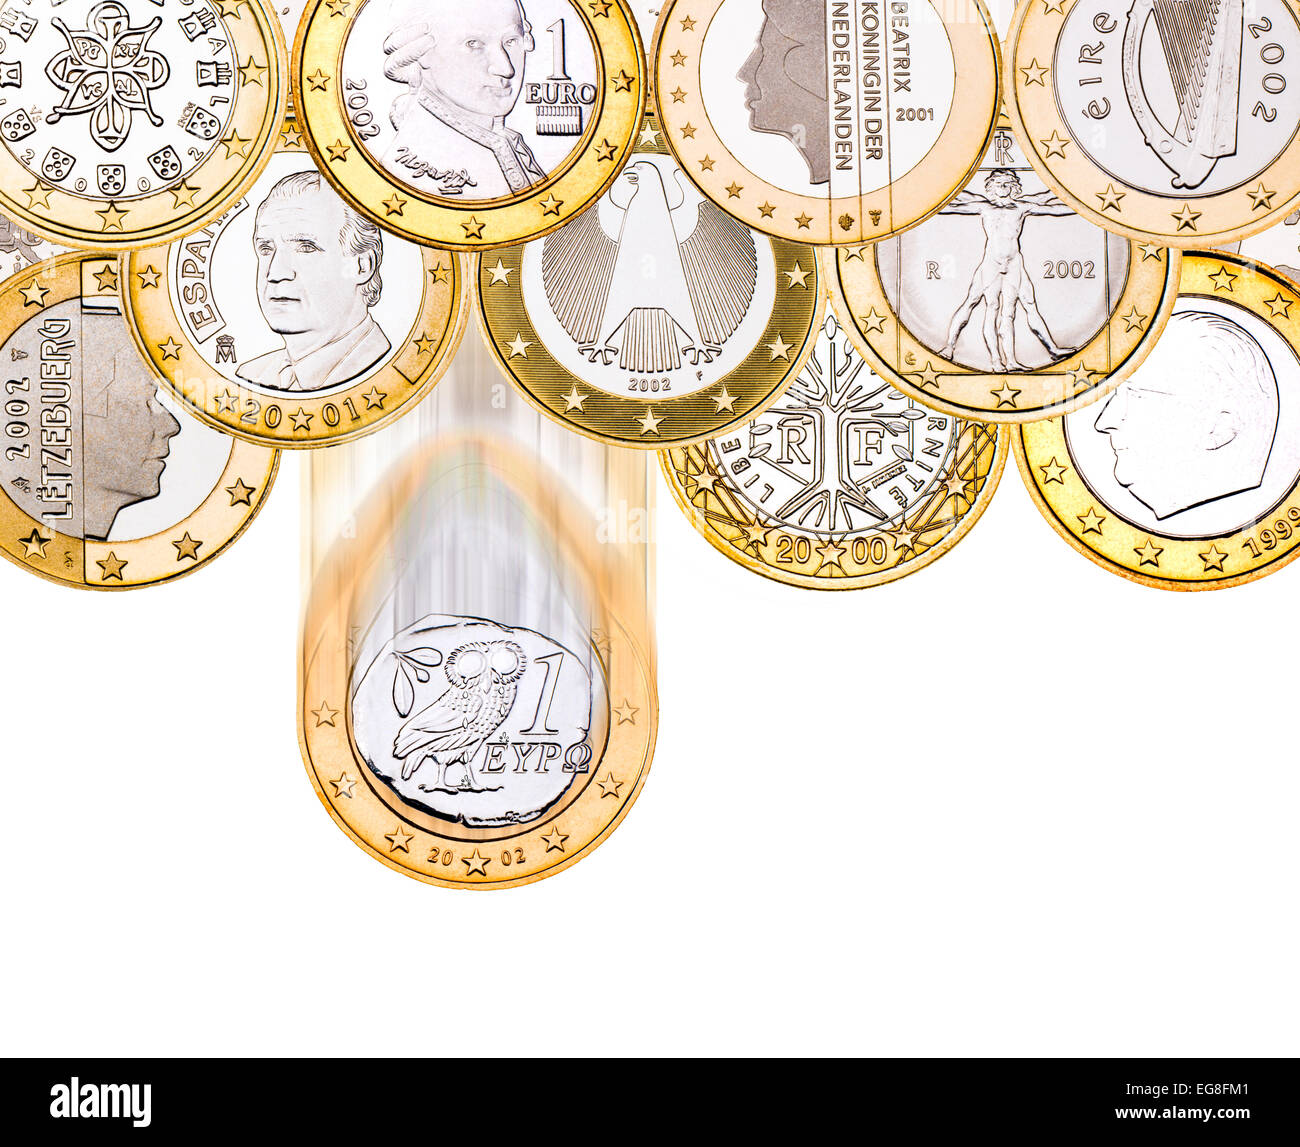 Greek Euro coin falling from those of other Euro countries - Stock Image